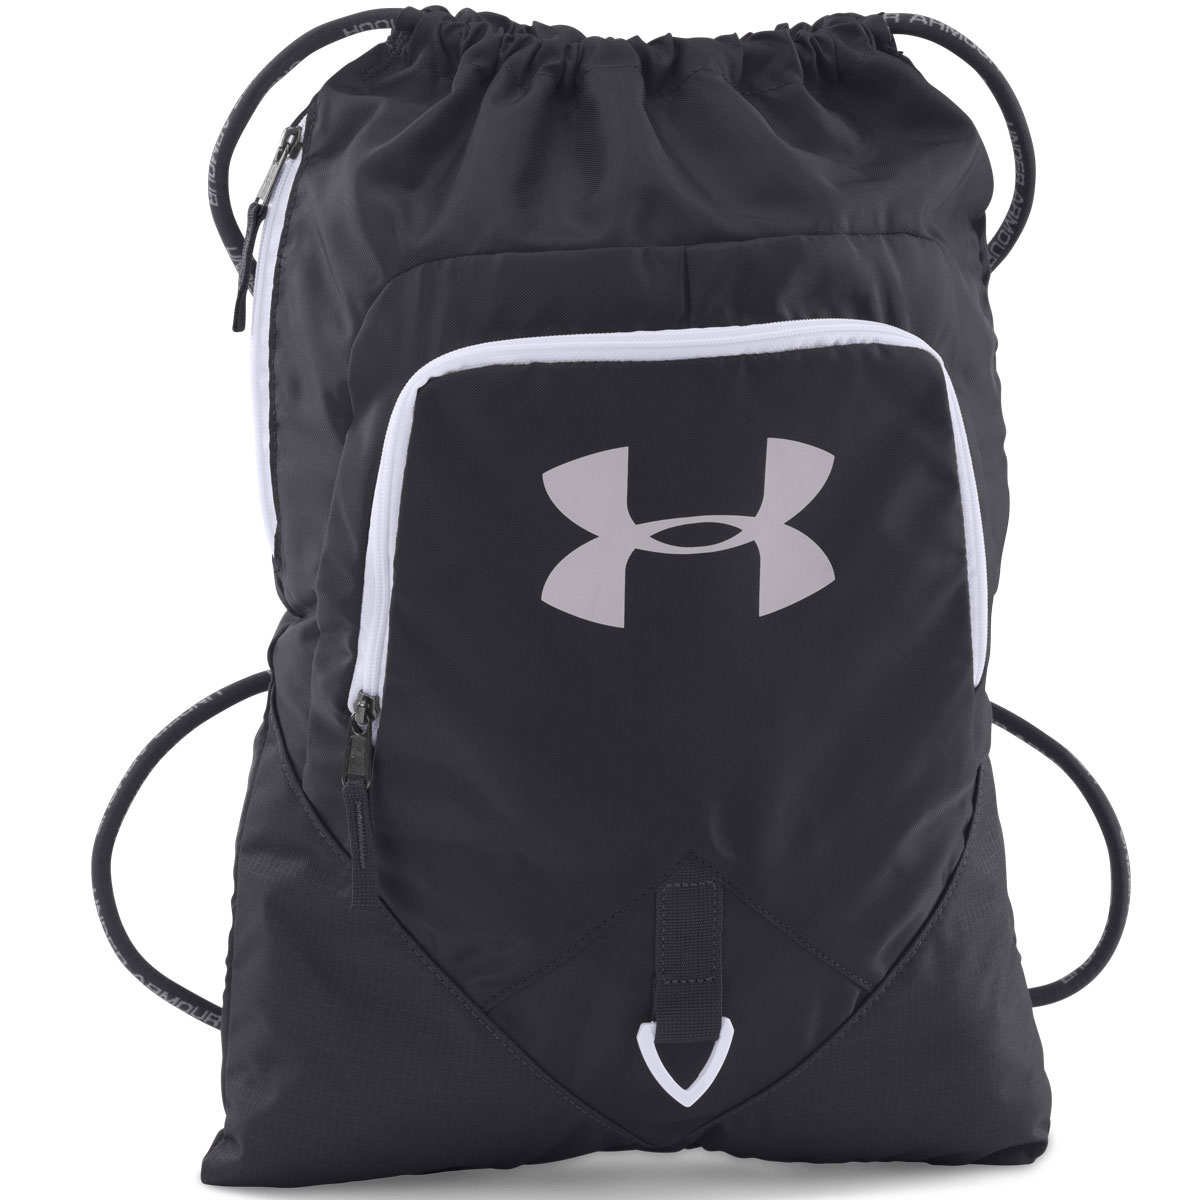 Under Armour 2017 UA Undeniable Sackpack Drawstring Rucksack Gym ...